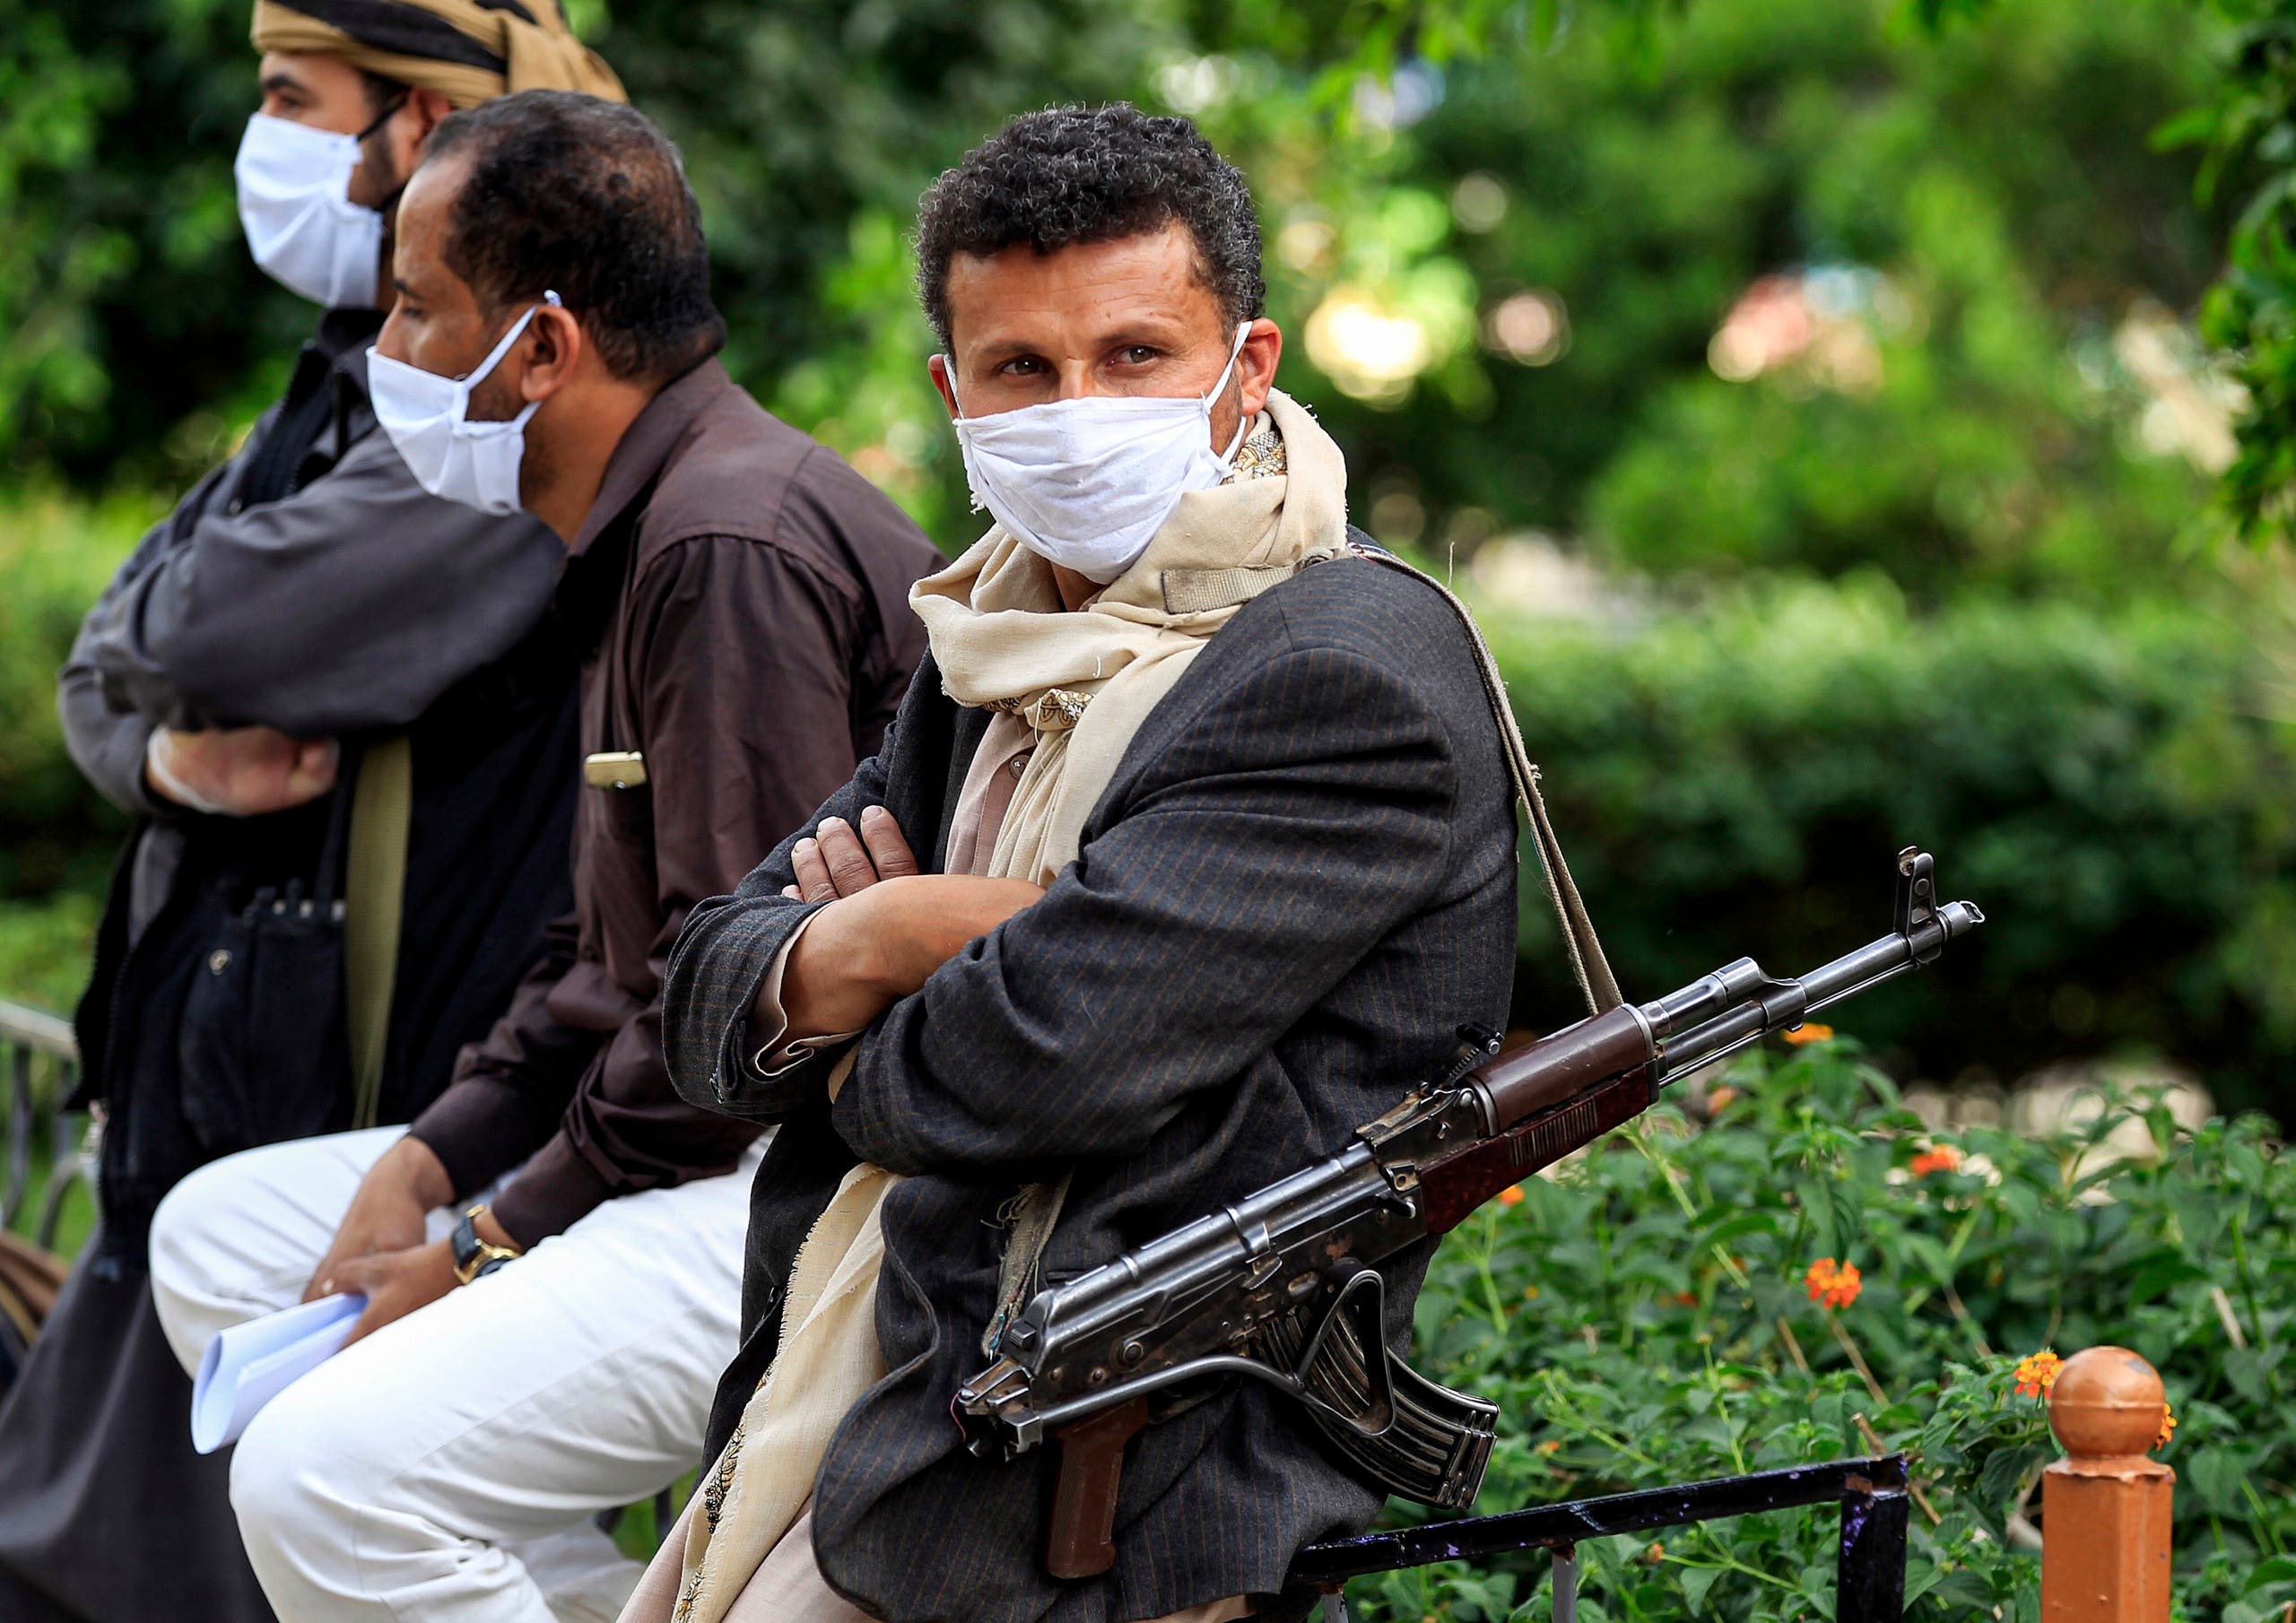 A fighter loyal to Yemen's Houthi rebels acting as security, looks on while wearing a face mask and latex gloves and slinging a Kalashnikov assault rifle as volunteers part of a community-led initiative to prevent the spread of COVID-19 coronavirus disease gather in Yemen's capital Sanaa on May 14, 2020. (AFP)